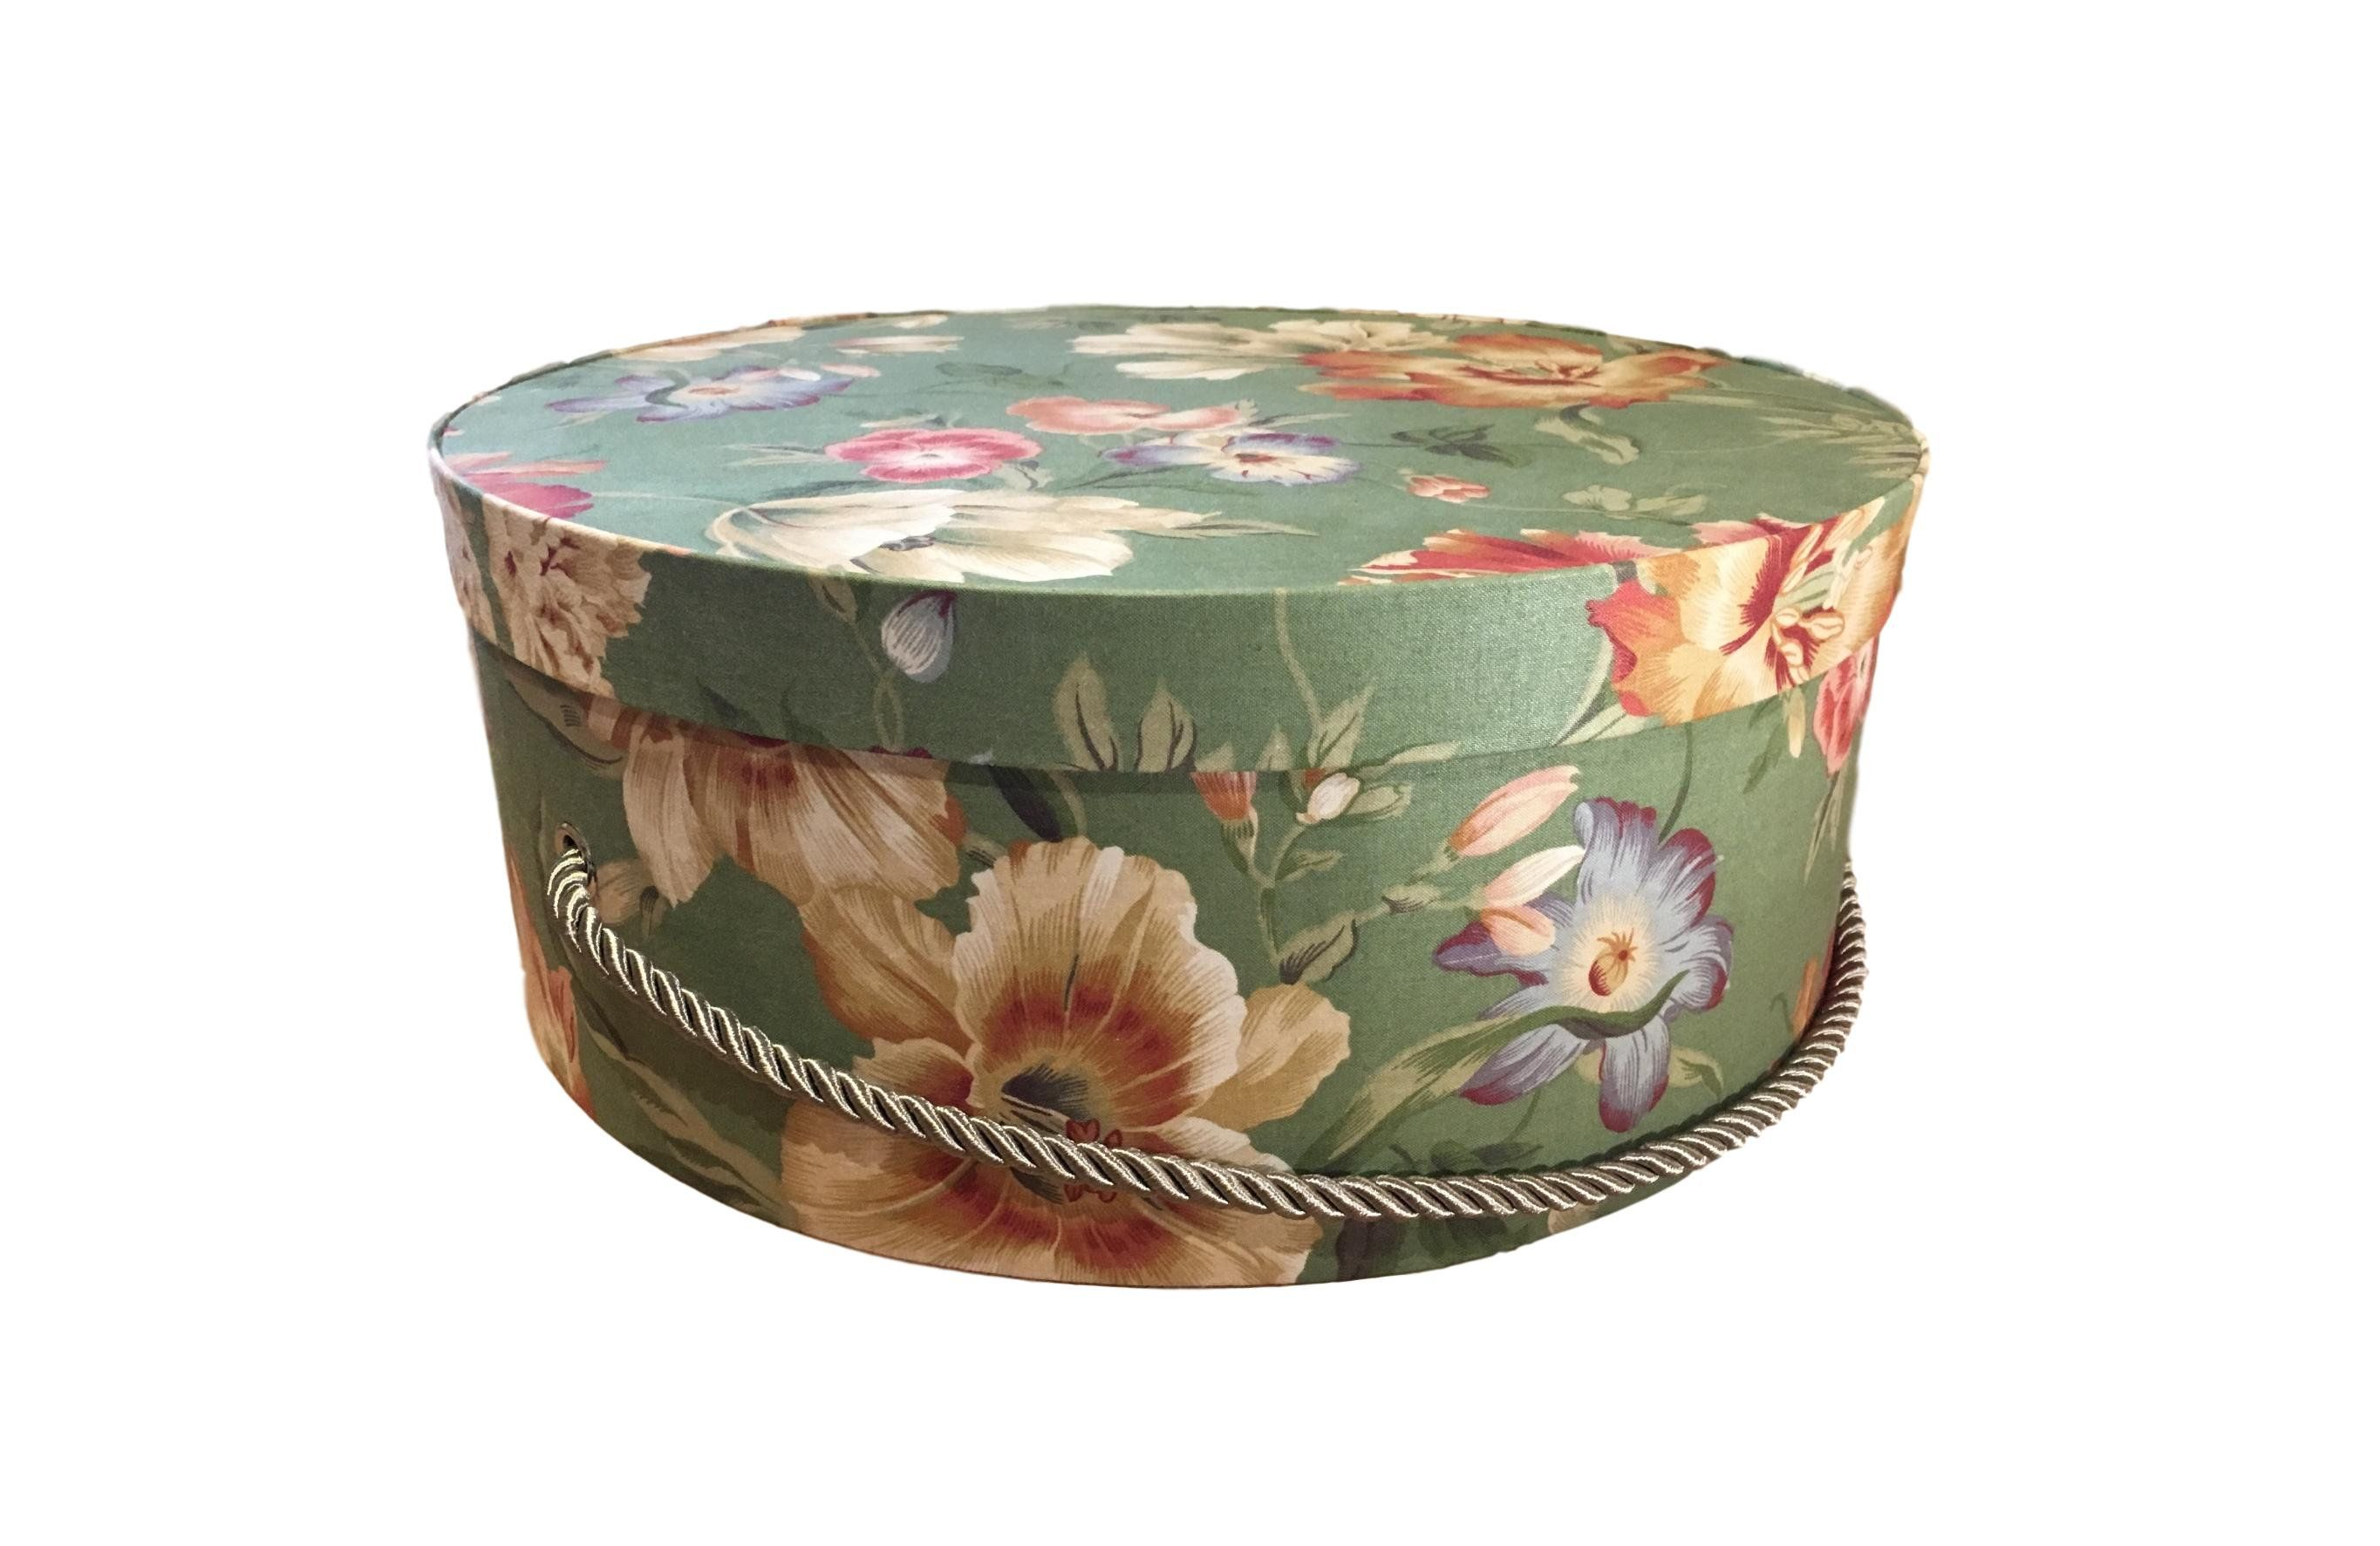 decorative large home cube improvement decor diy splendry recovered storage boxes